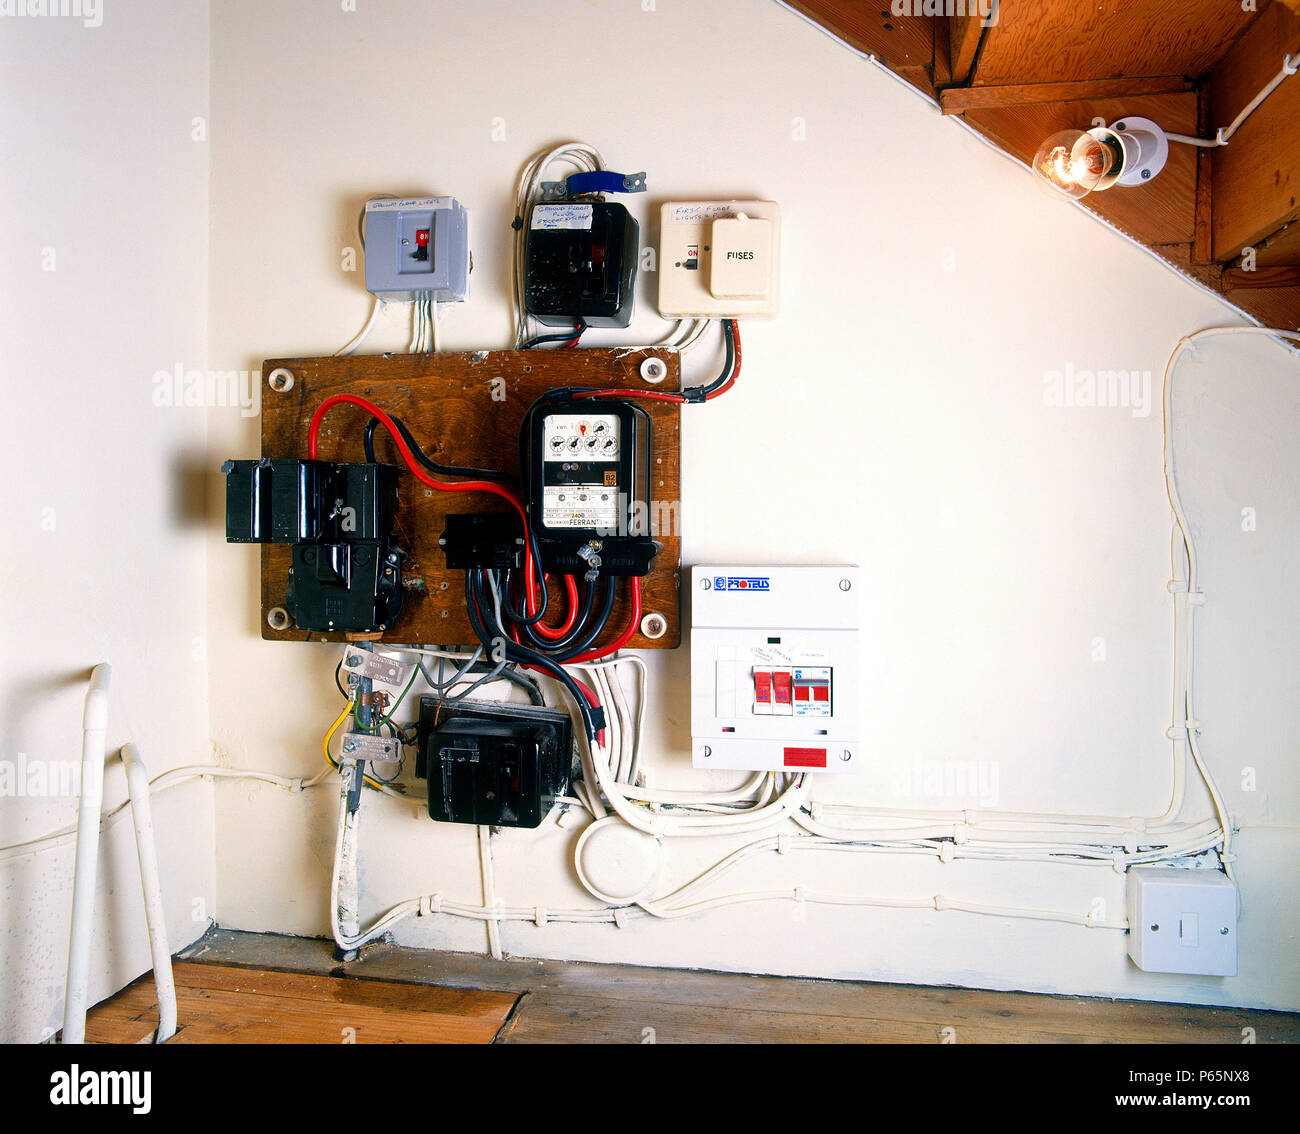 Rewiring Stock Photos Images Alamy Old Doorbell Fuse Box Image